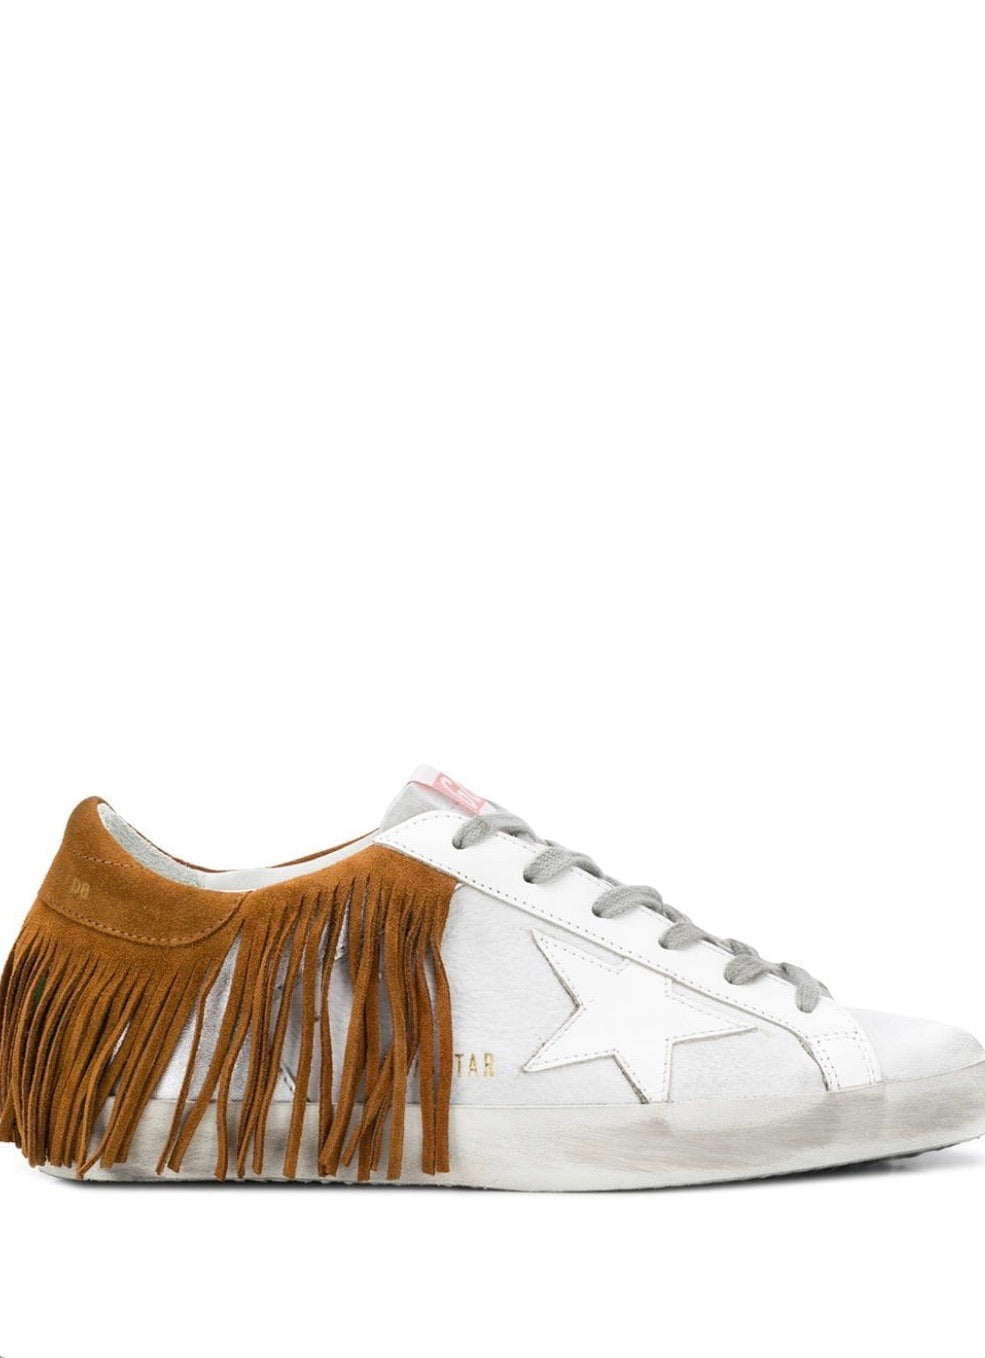 GGDB - Superstar fringed sneakers white   leather